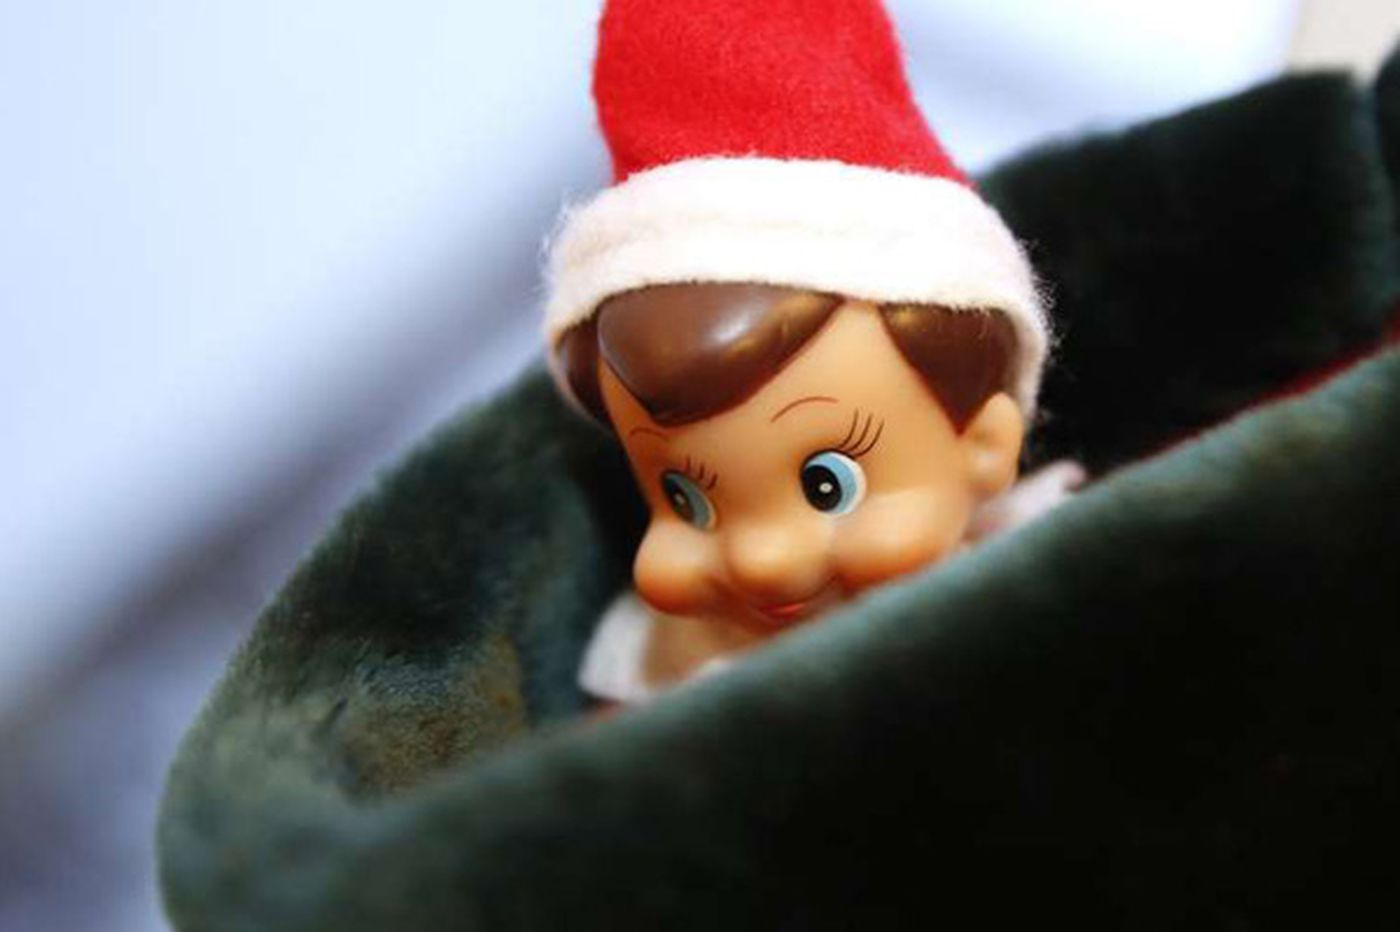 All-seeing Elf on the Shelf: Magical or creepy?